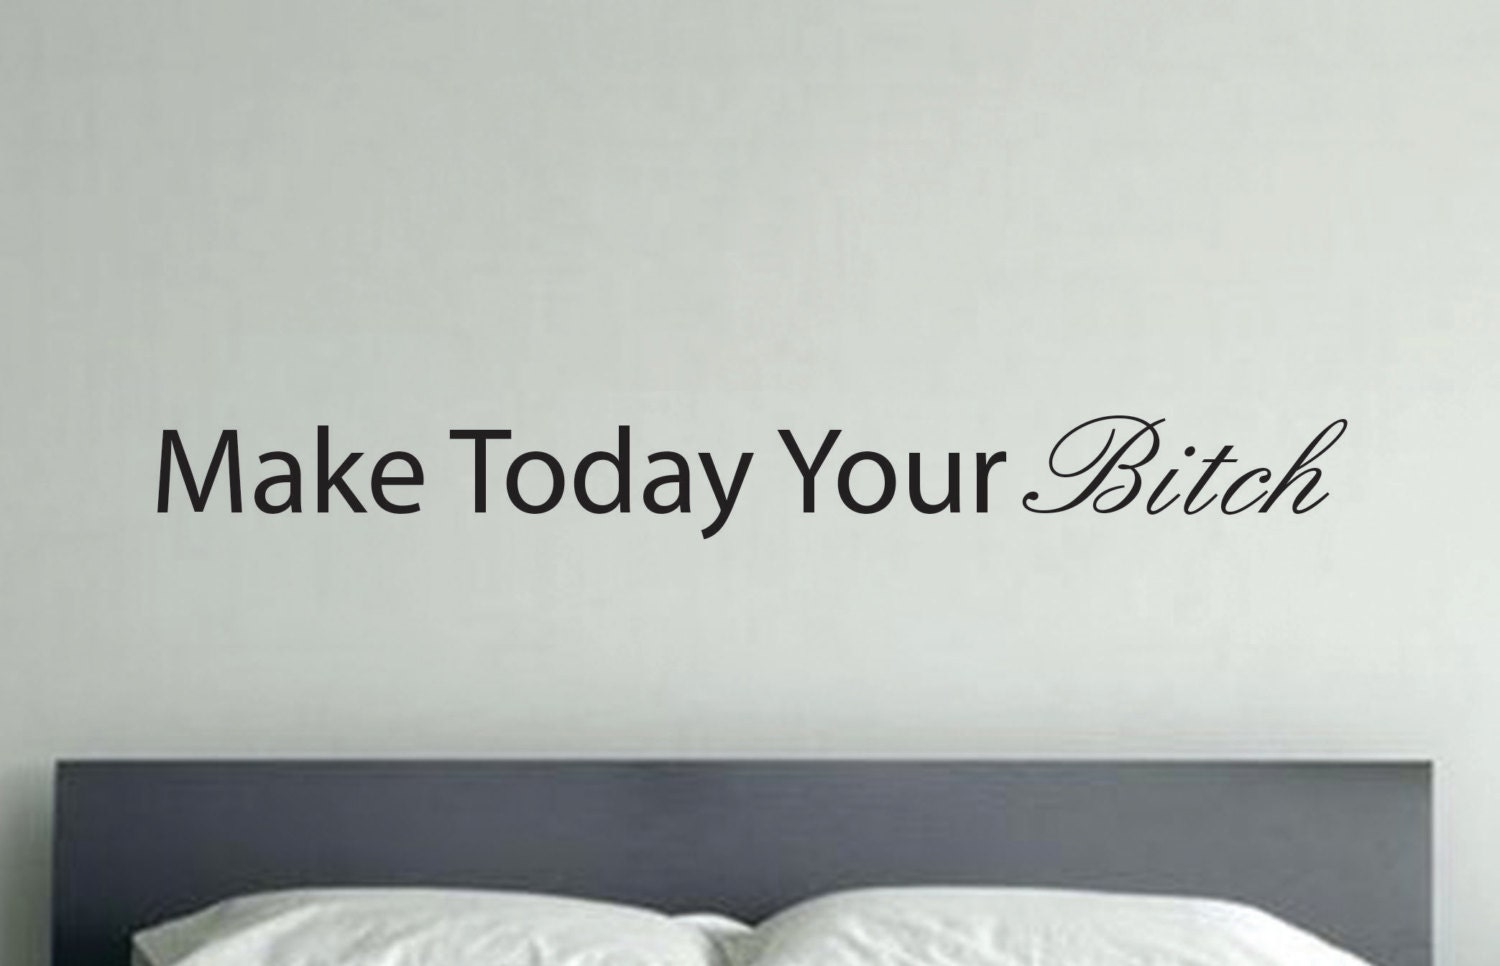 Funny motivational wall decalwall ceiling decor vinyl wall zoom amipublicfo Choice Image